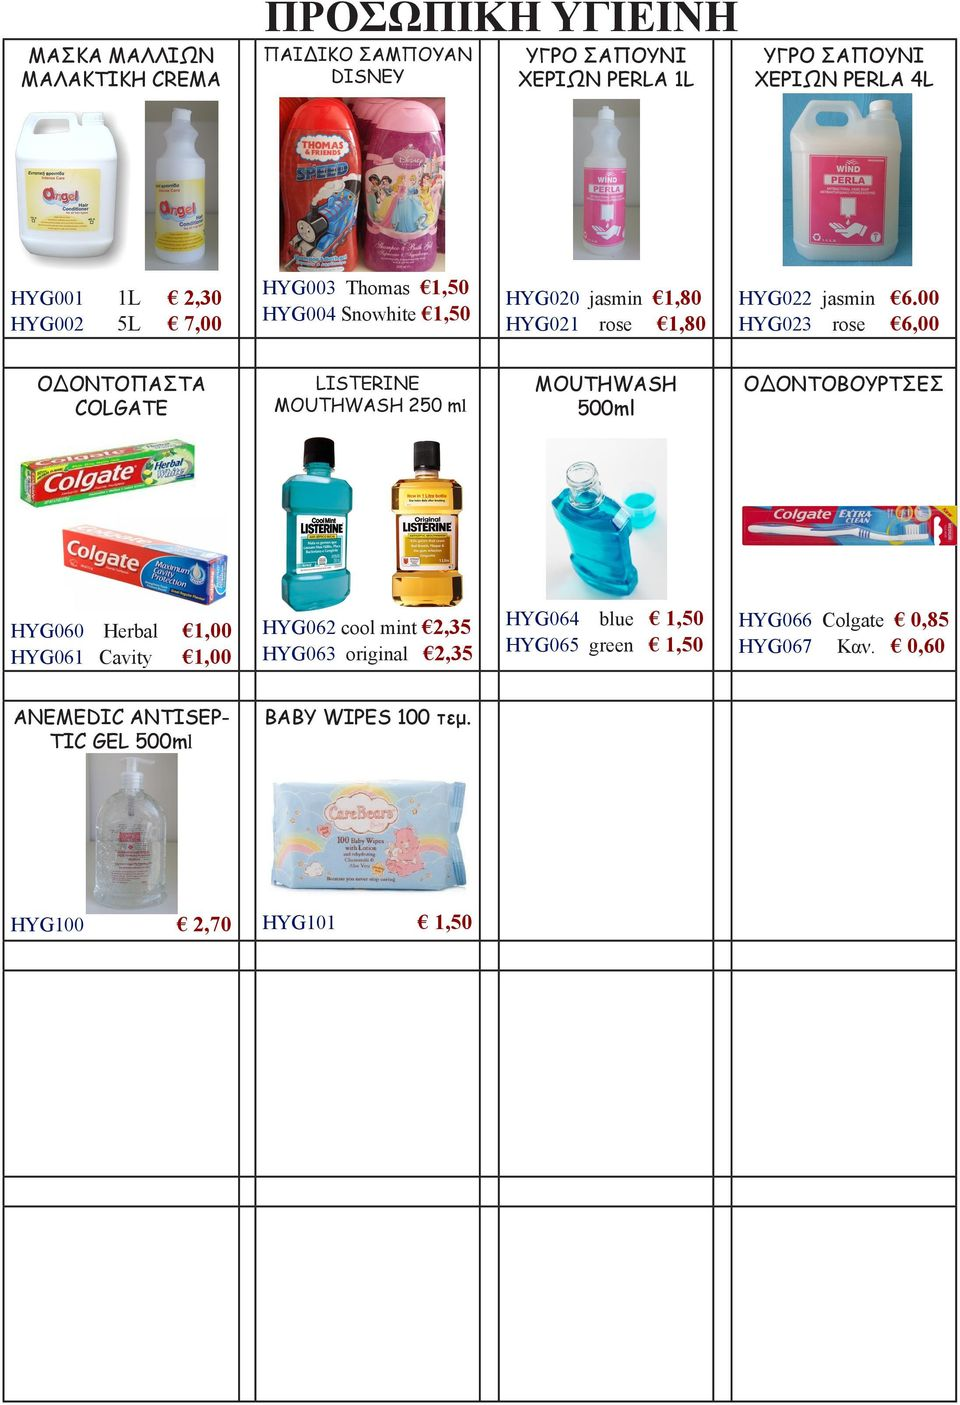 00 HYG023 rose 6,00 ΟΔΟΝΤΟΠΑΣΤΑ COLGATE LISTERINE MOUTHWASH 250 ml MOUTHWASH 500ml ΟΔΟΝΤΟΒΟΥΡΤΣΕΣ HYG060 Herbal 1,00 HYG061 Cavity 1,00 HYG062